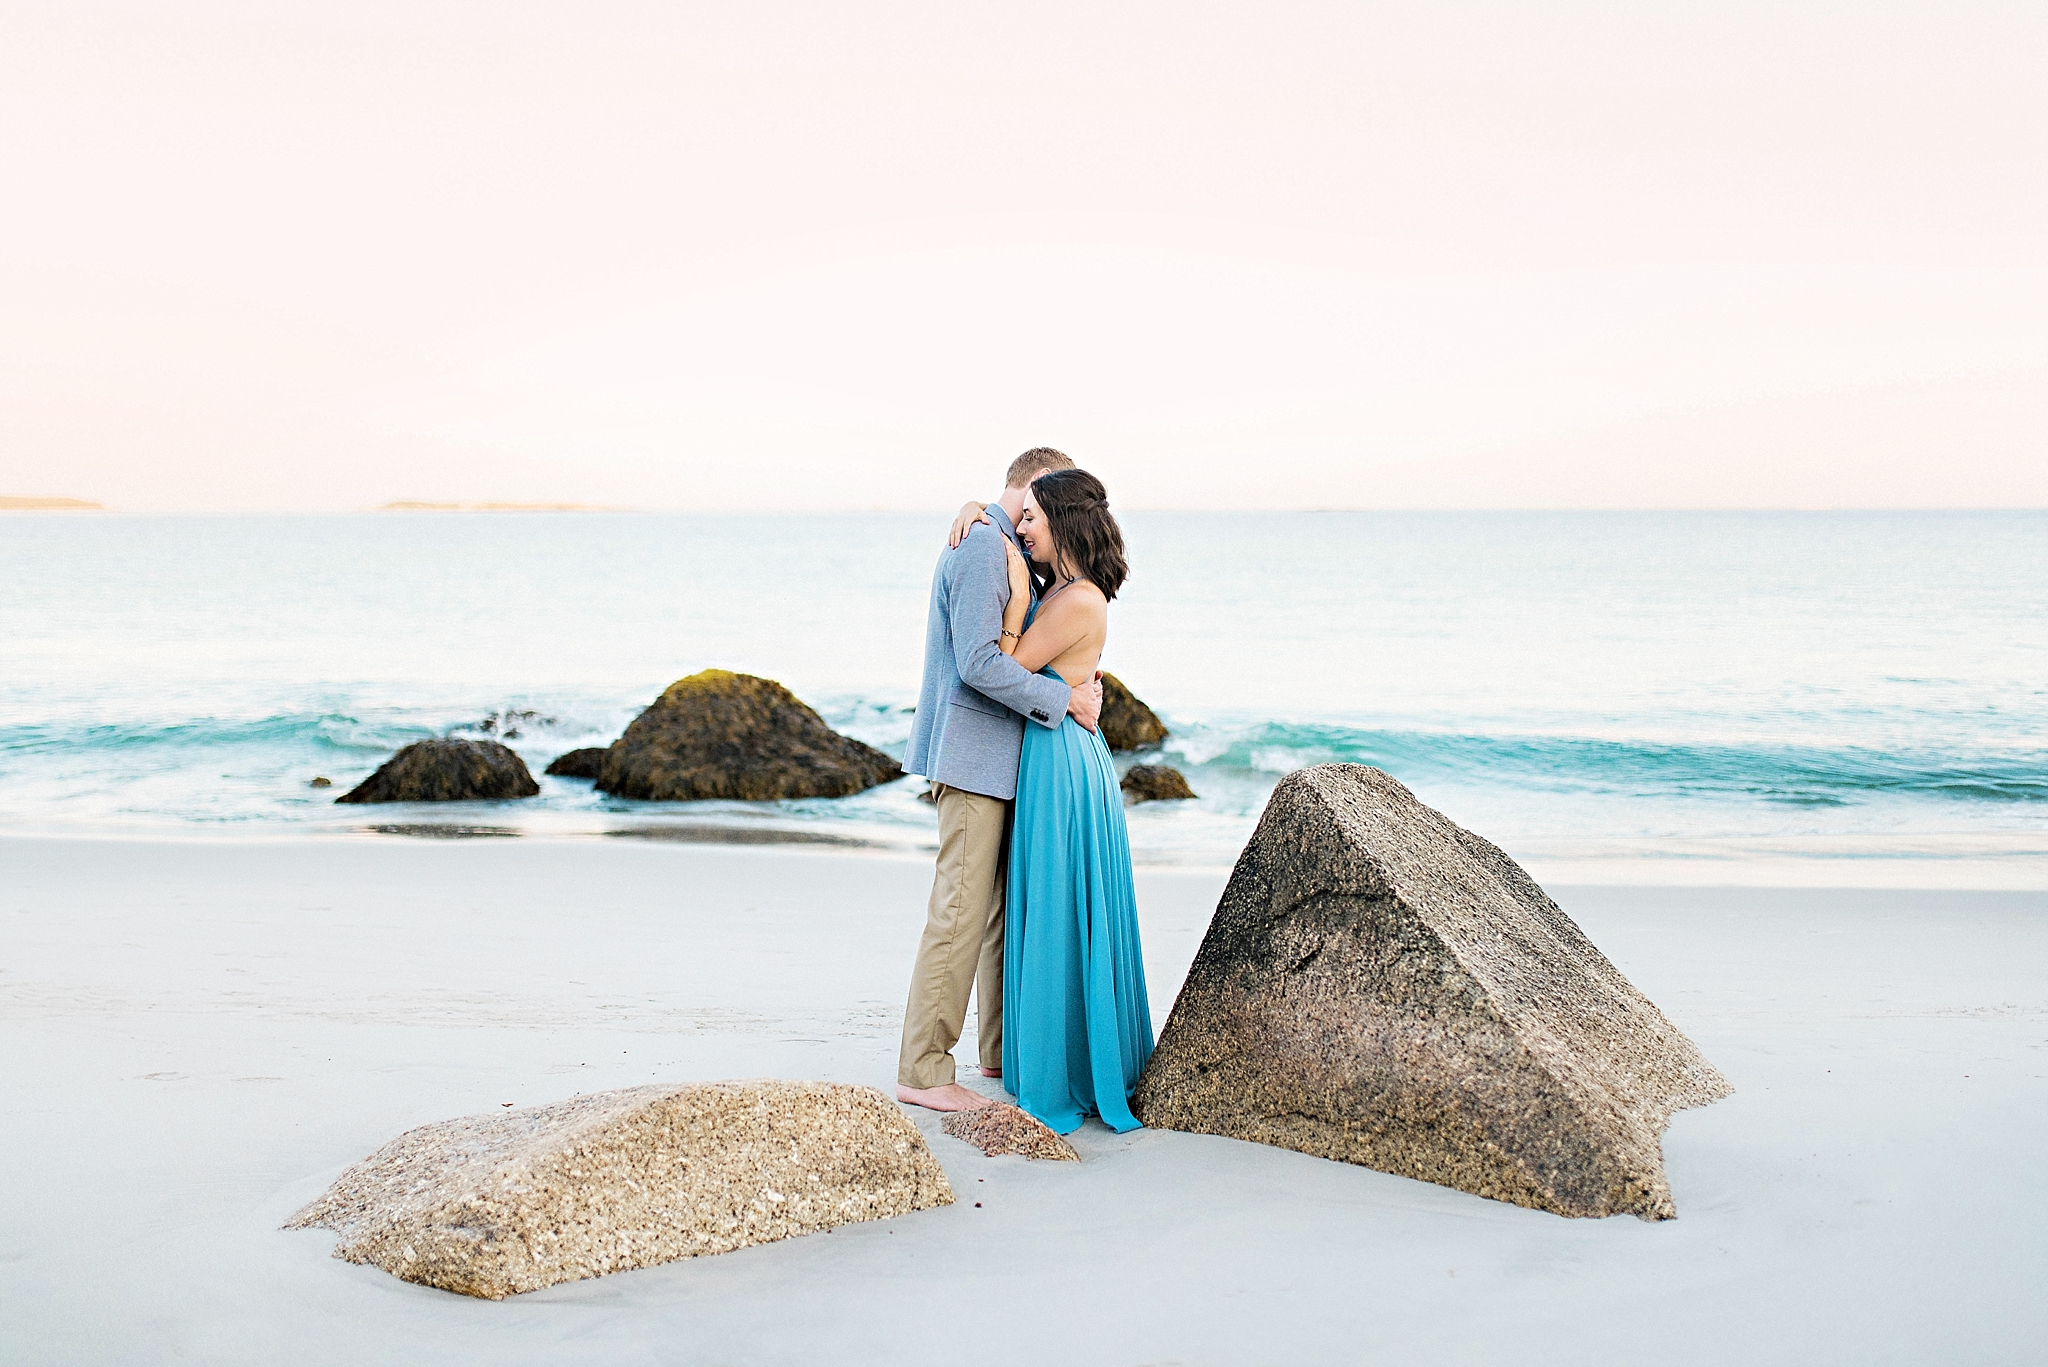 Romantic Seaside Beach Engagement Shoot in Lulu's long flowy maxy dress_031.jpg